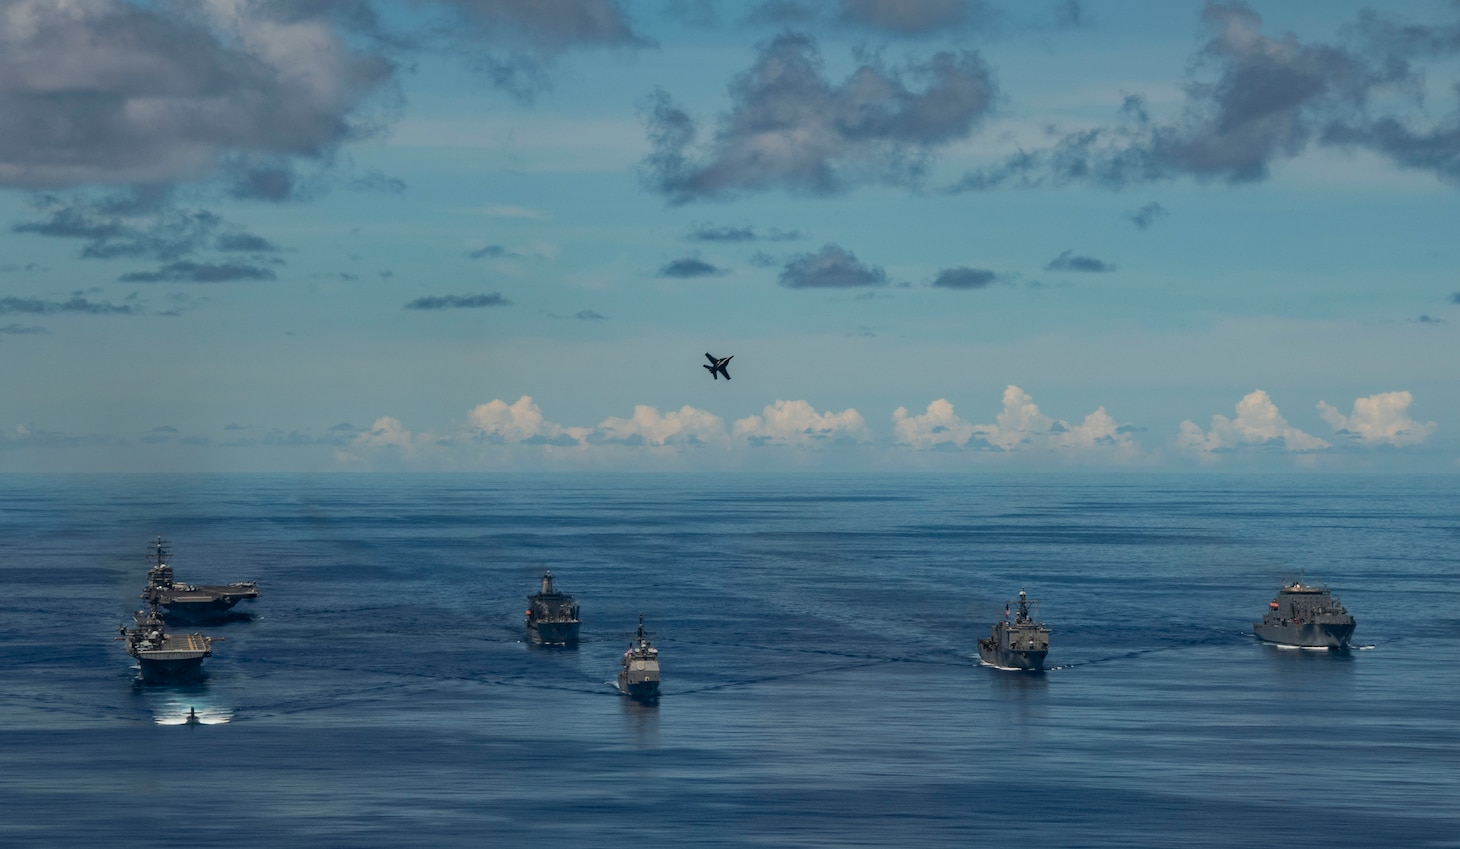 PHILIPPINE SEA (Sept. 25, 2020) USS Chicago (SSN 721), front, USS America (LHA 6), USS Ronald Reagan (CVN 76), USNS John Ericsson (T-AO 194) and USS Antietam (CG 54) steam in formation while an F/A-18E Super Hornet, attached to the Eagles of Strike Fighter Squadron (VFA) 115, flies over the formation in support of Valiant Shield 2020. Valiant Shield is a U.S. only, biennial field training exercise (FTX) with a focus on integration of joint training in a blue-water environment among U.S. forces. This training enables real-world proficiency in sustaining joint forces through detecting, locating, tracking and engaging units at sea, in the air, on land and in cyberspace in response to a range of mission areas. (U.S. Navy photo by Mass Communication Specialist 2nd Class Erica Bechard)